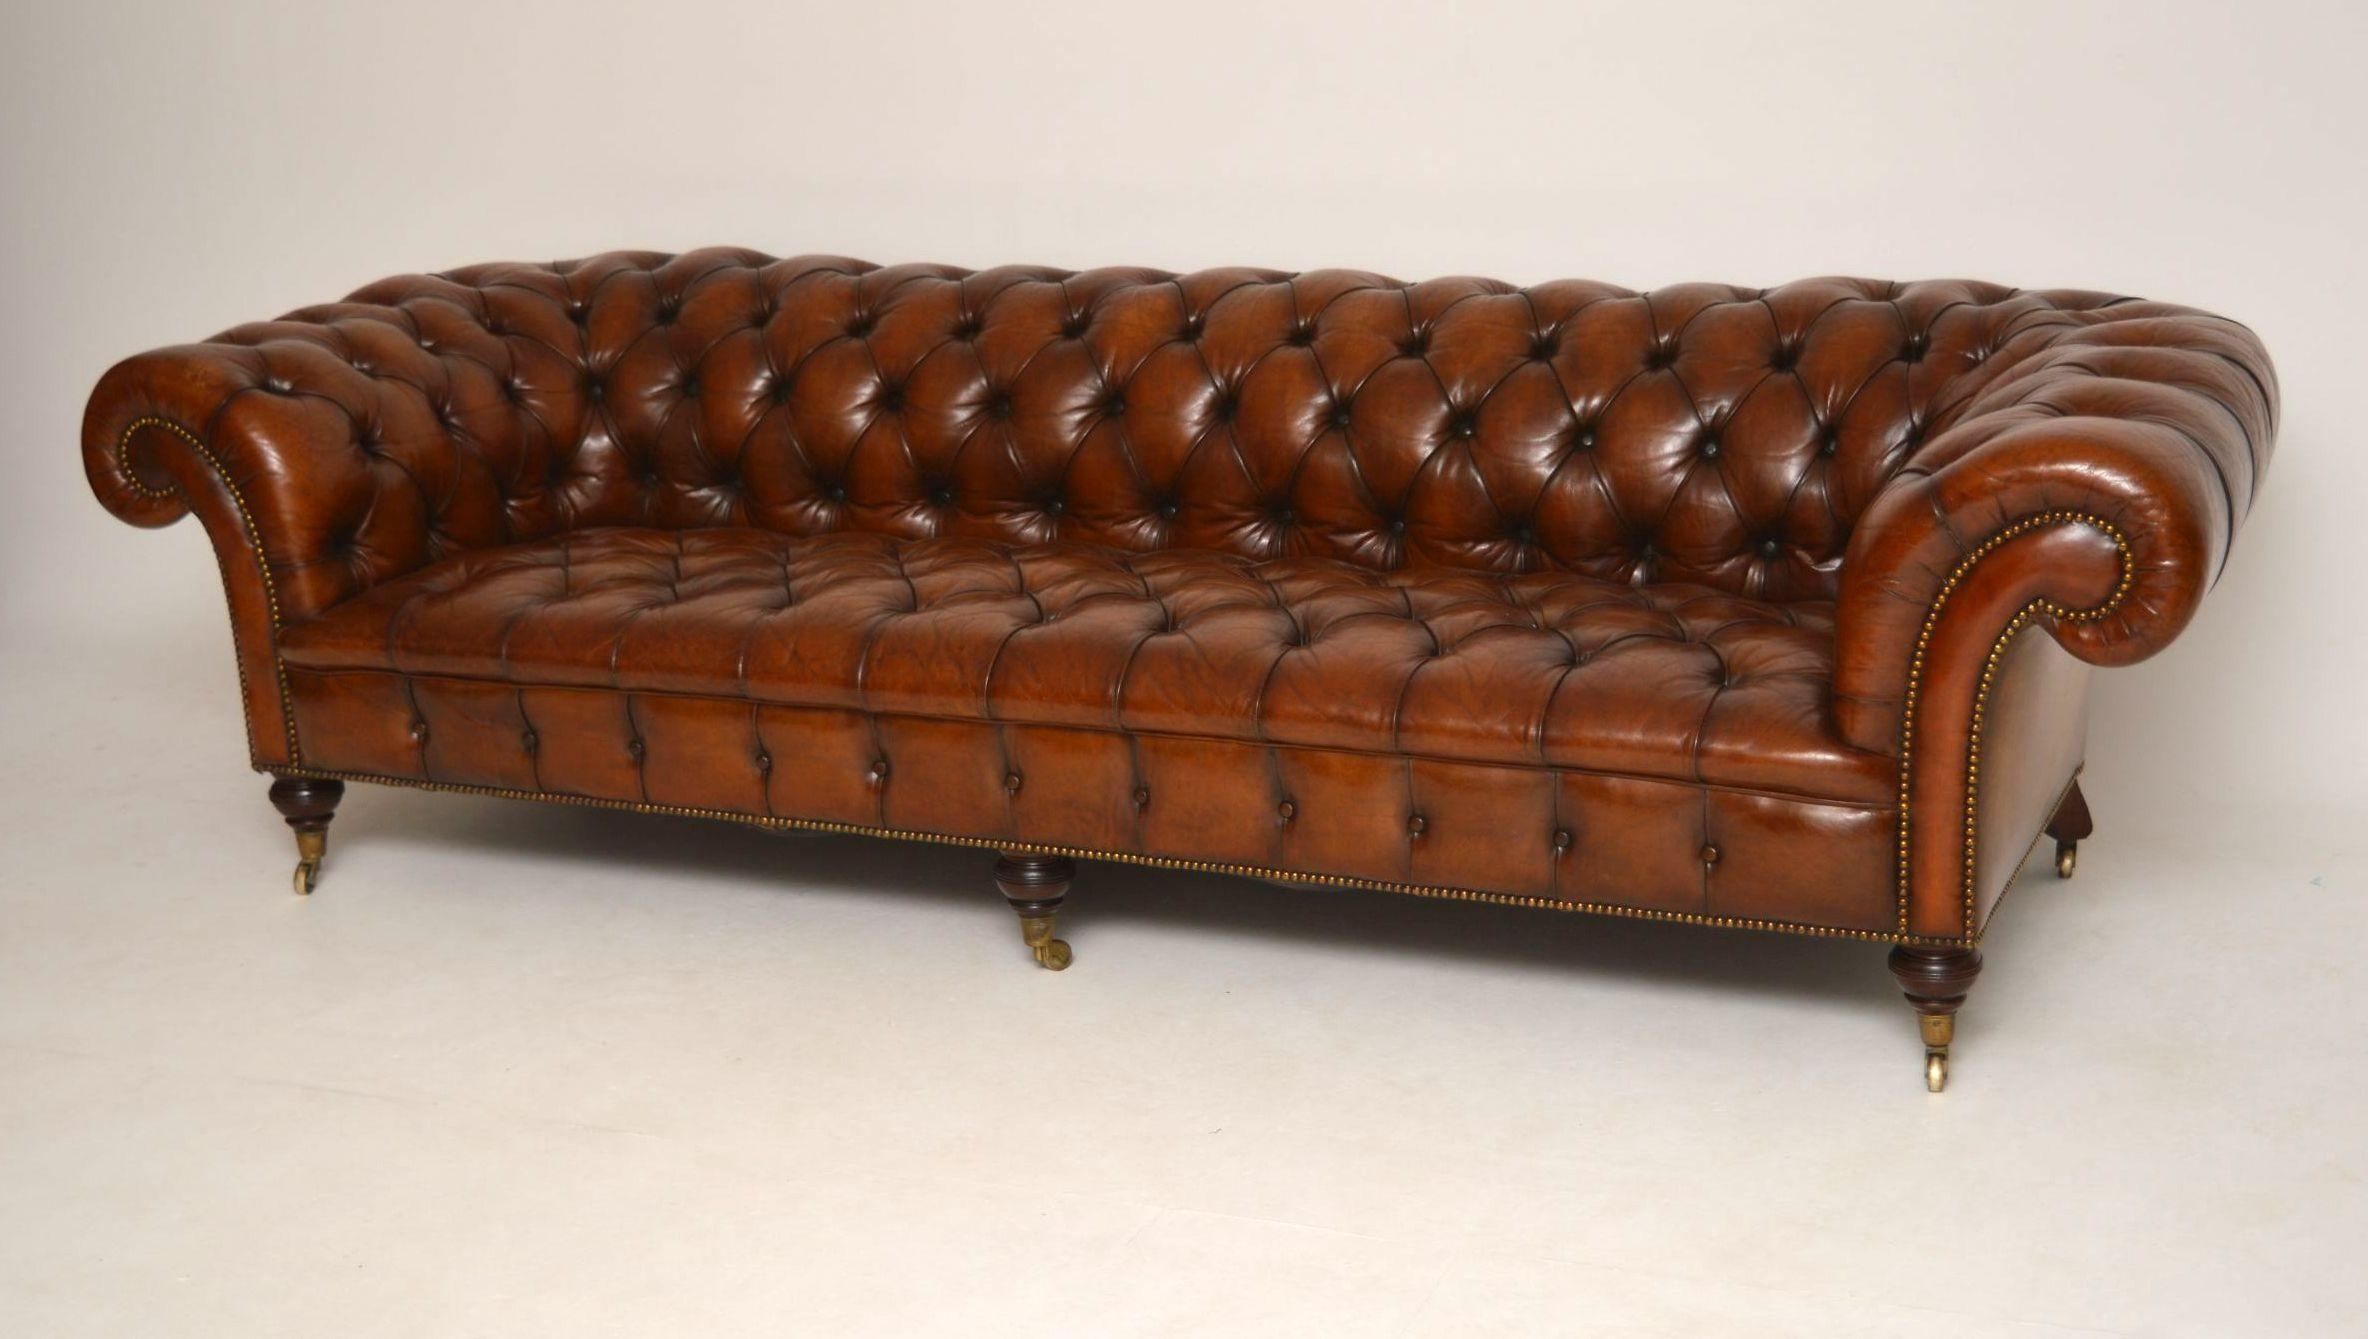 Storage Antique Chesterfield Sofas 24 With Antique Chesterfield Inside Victorian Leather Sofas (Image 14 of 20)